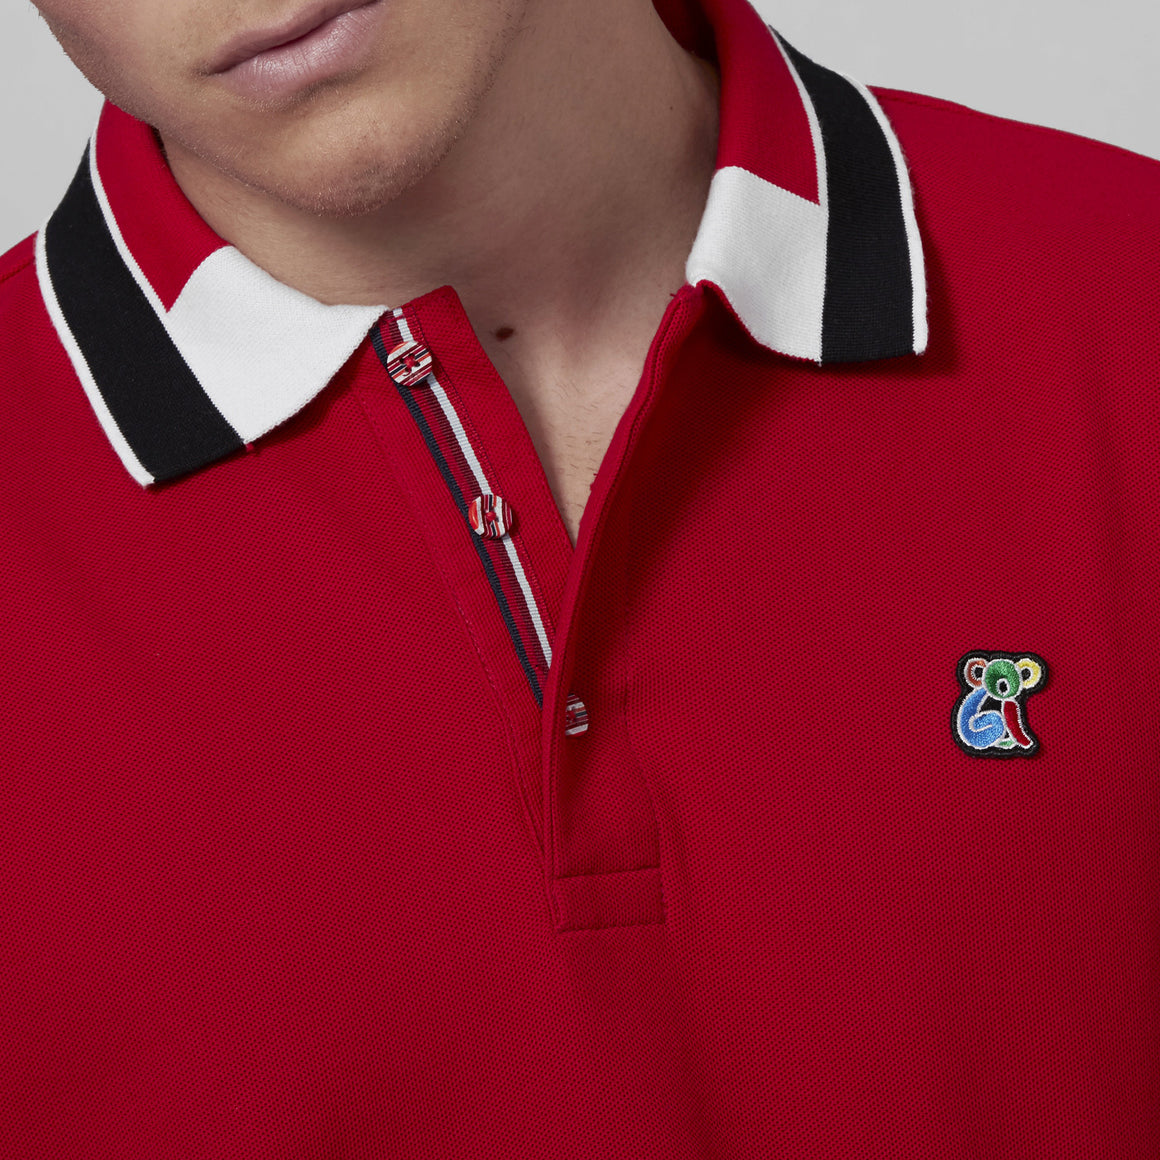 COOGI Koala Logo Polo - Red